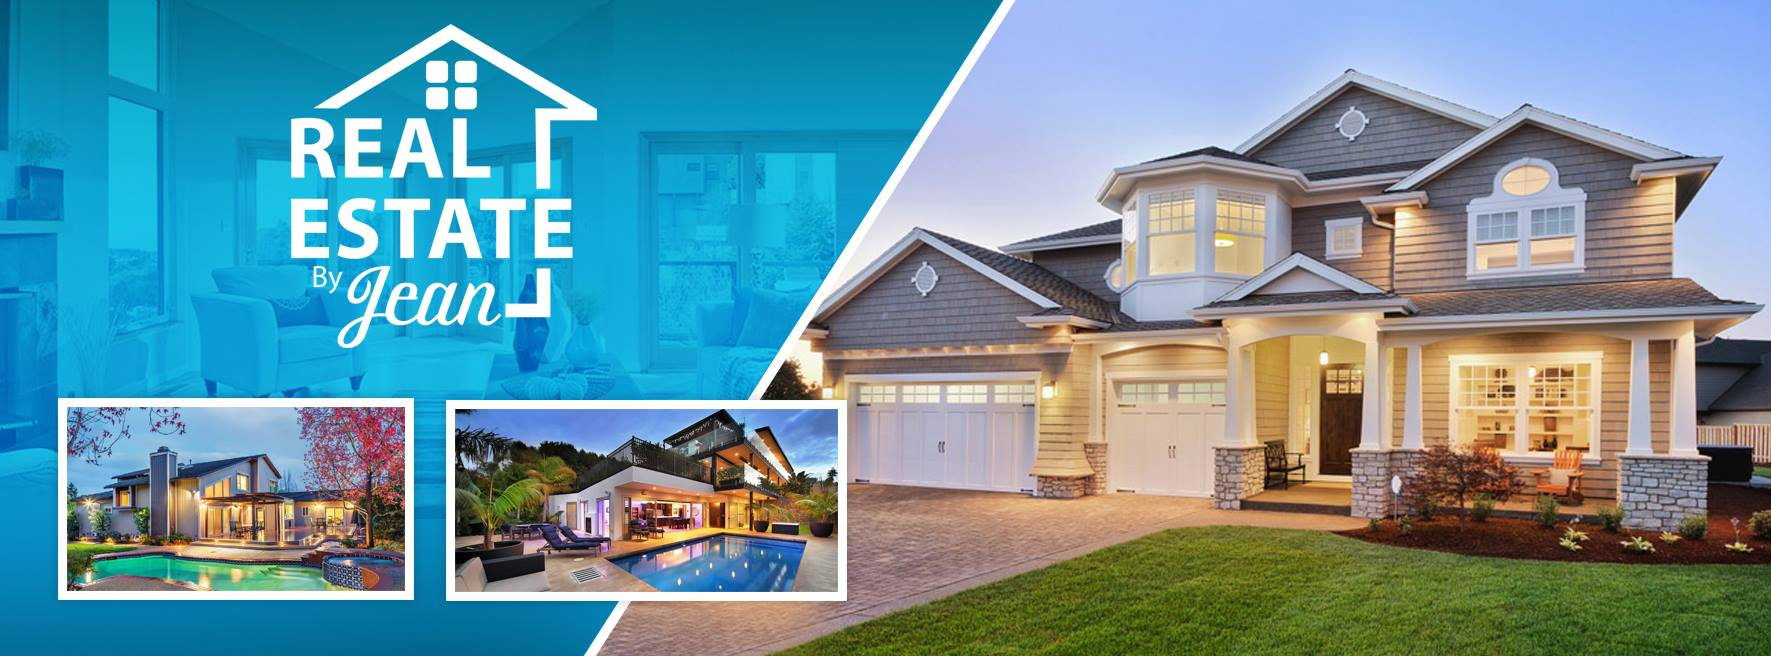 real estate marketing for real estate by jean